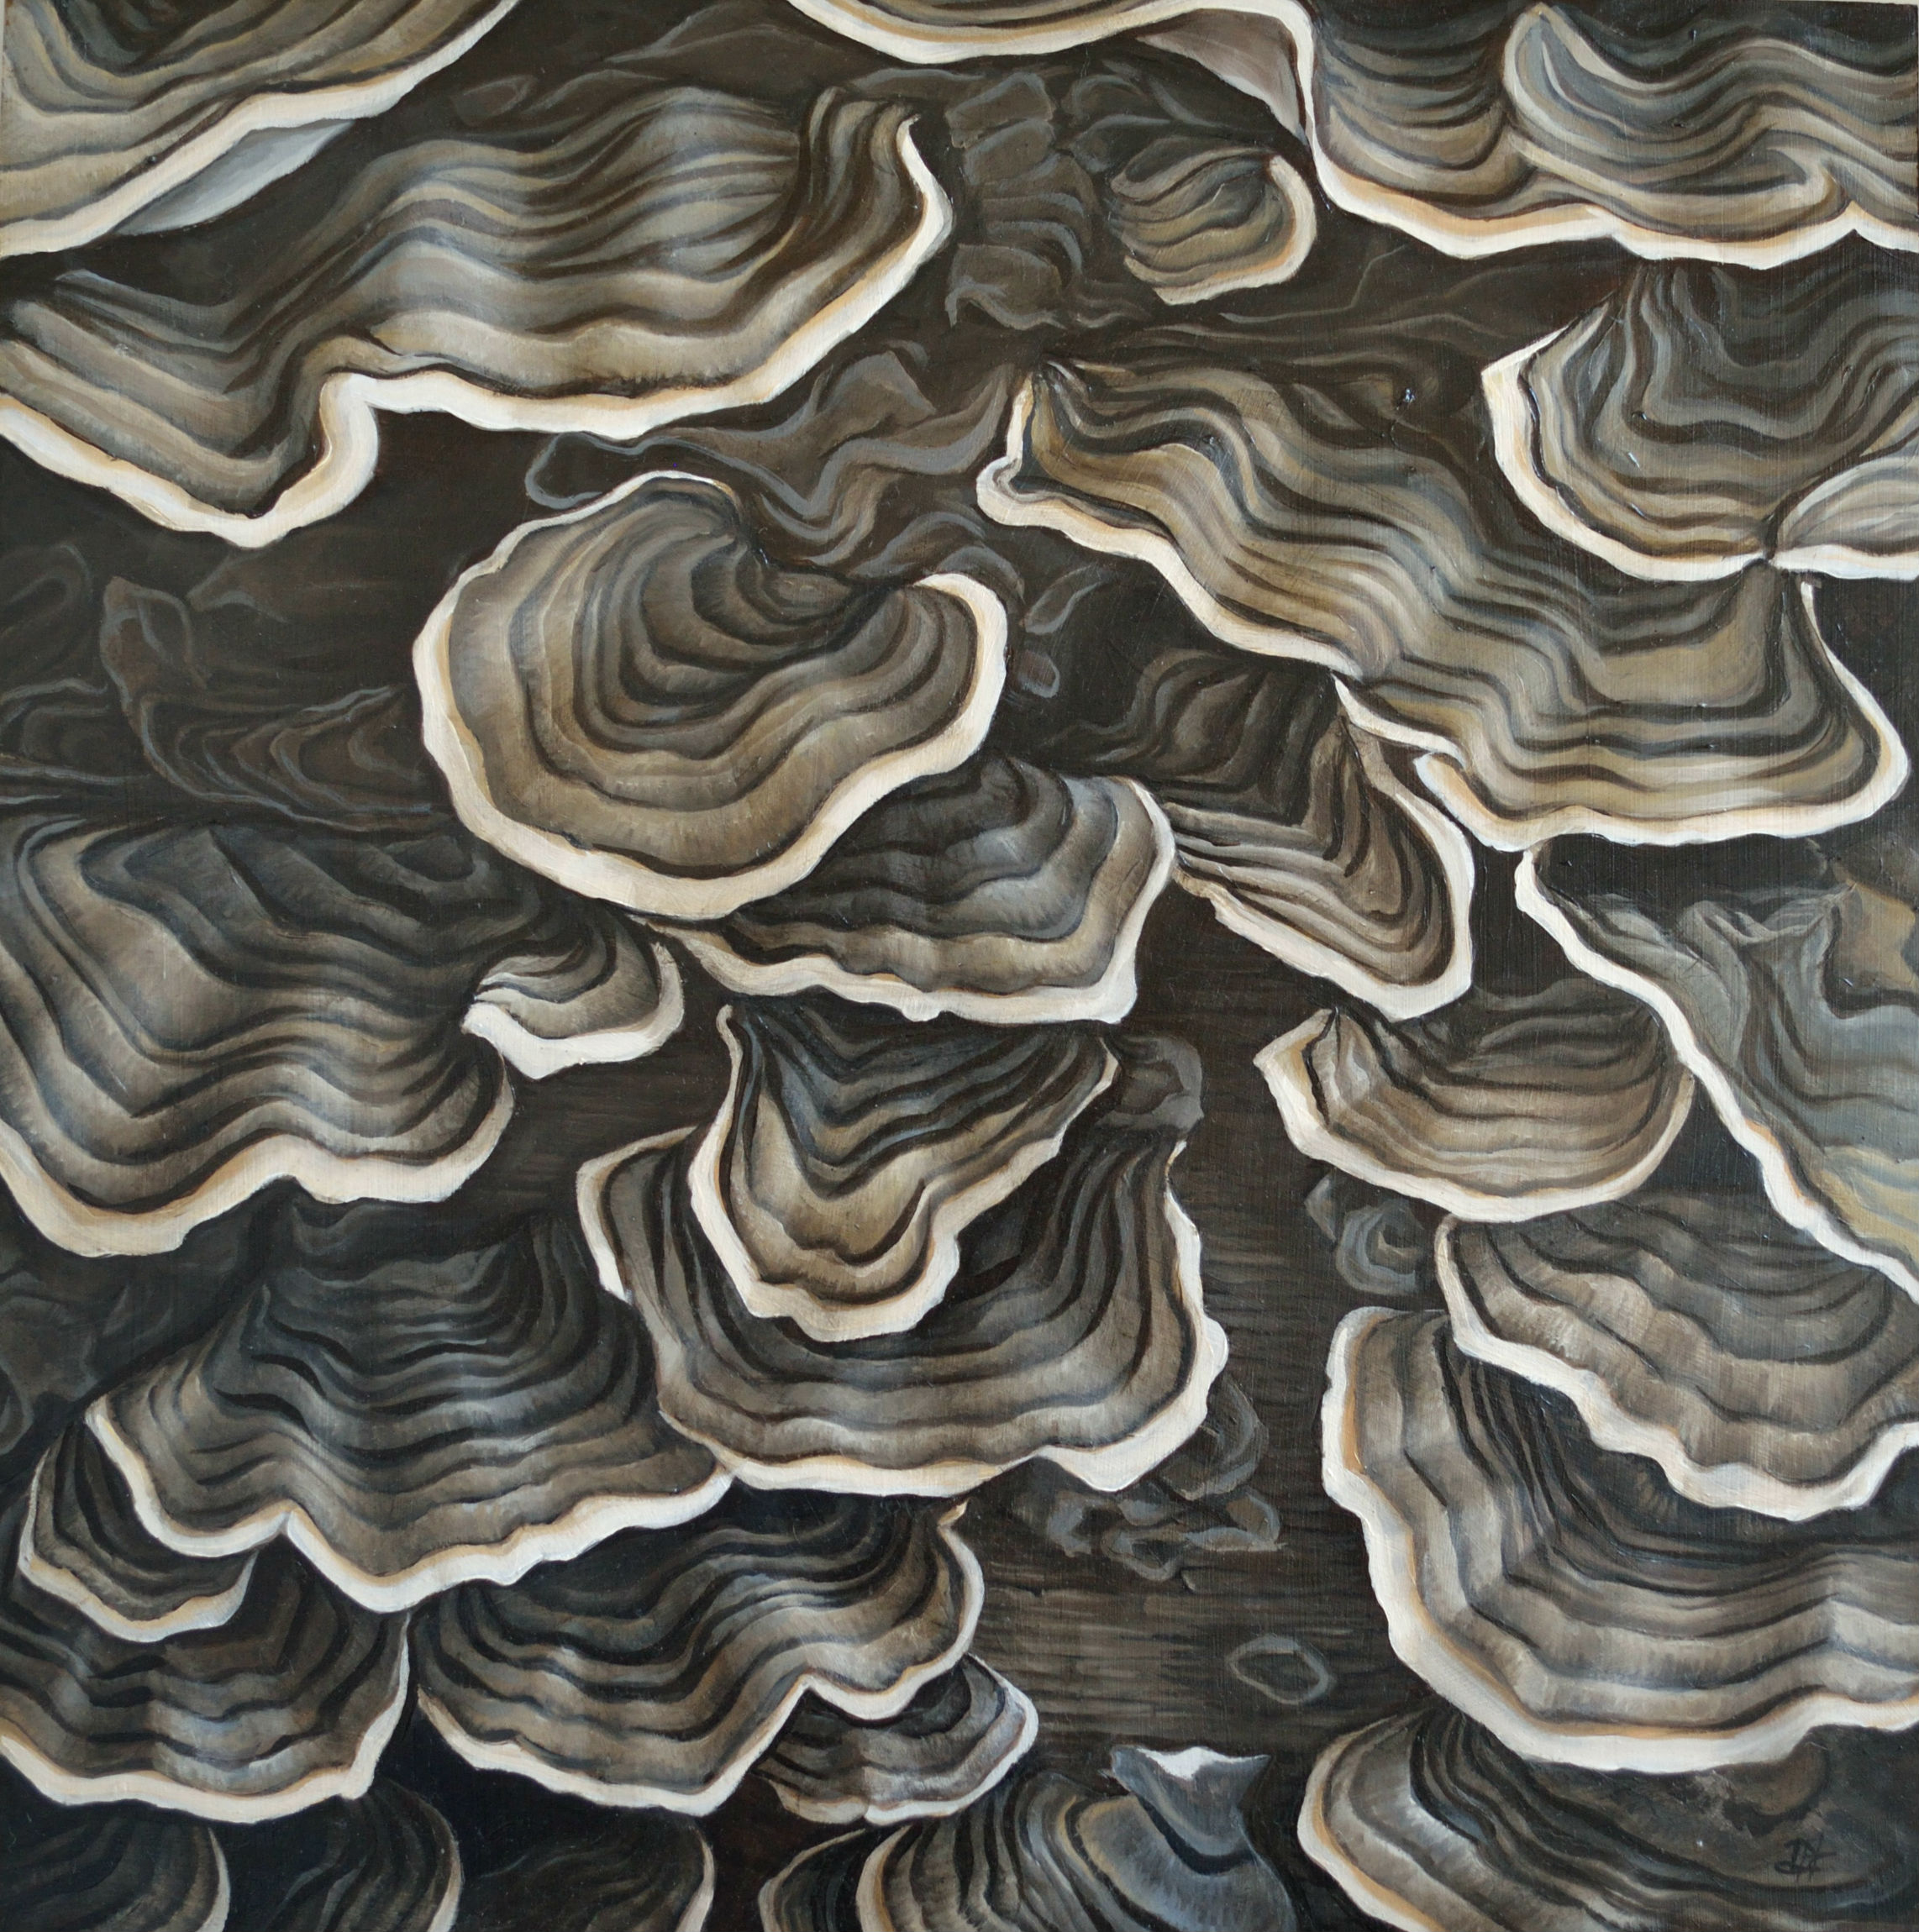 D_Horton_turkey_tail_mushrooms.jpg